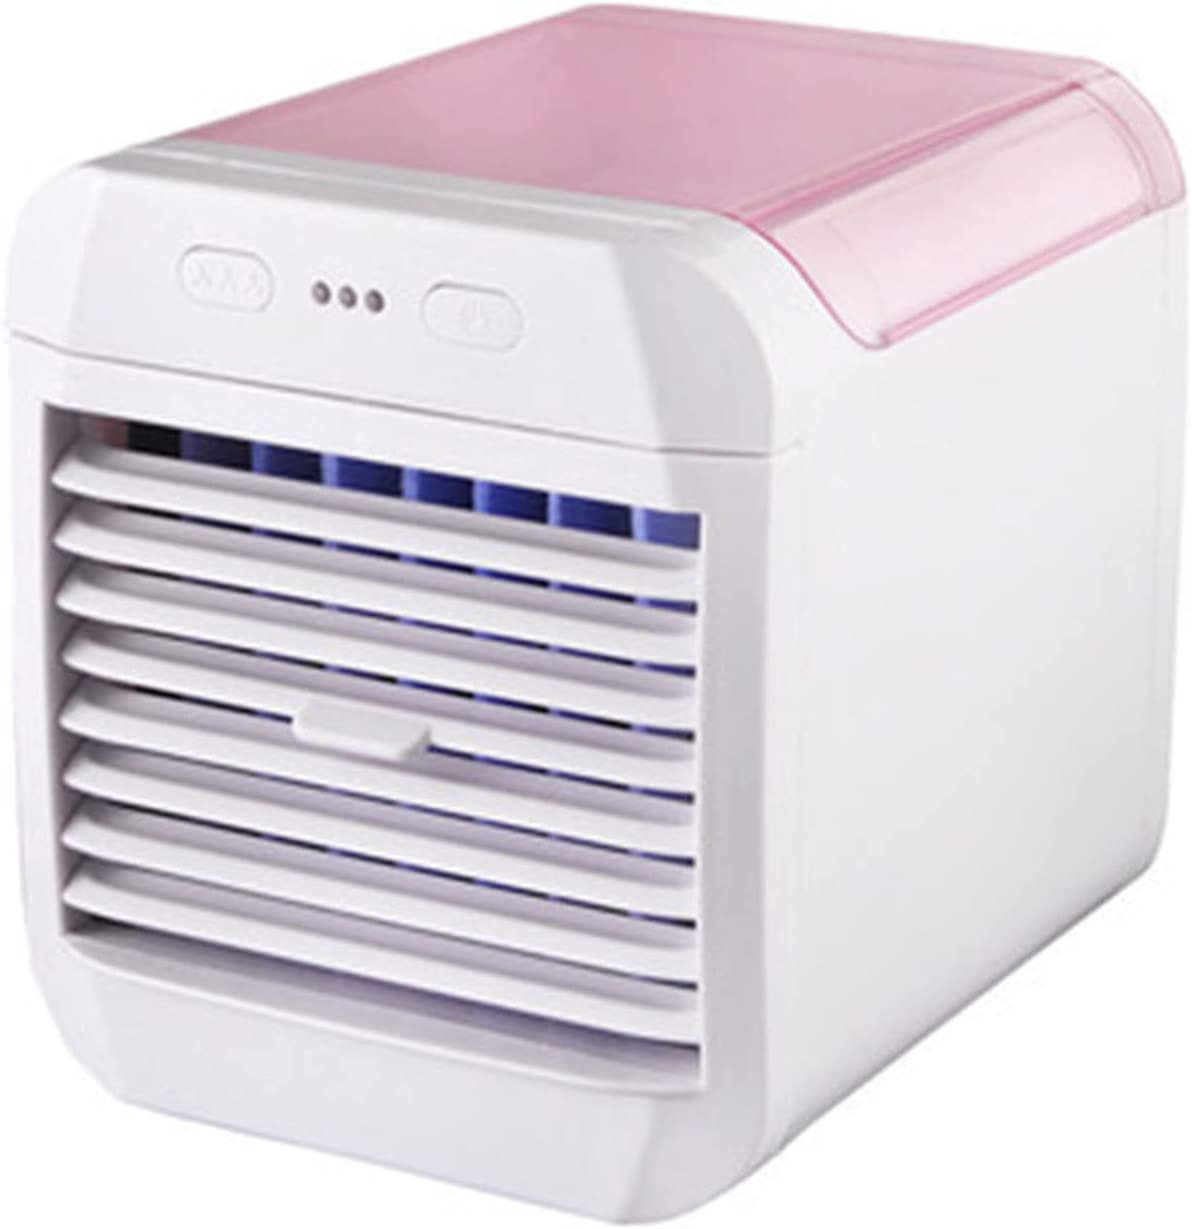 Yunyan Fan Portable Air Max 77% OFF Max 63% OFF Conditioner 3-Speed with Mini Cooler